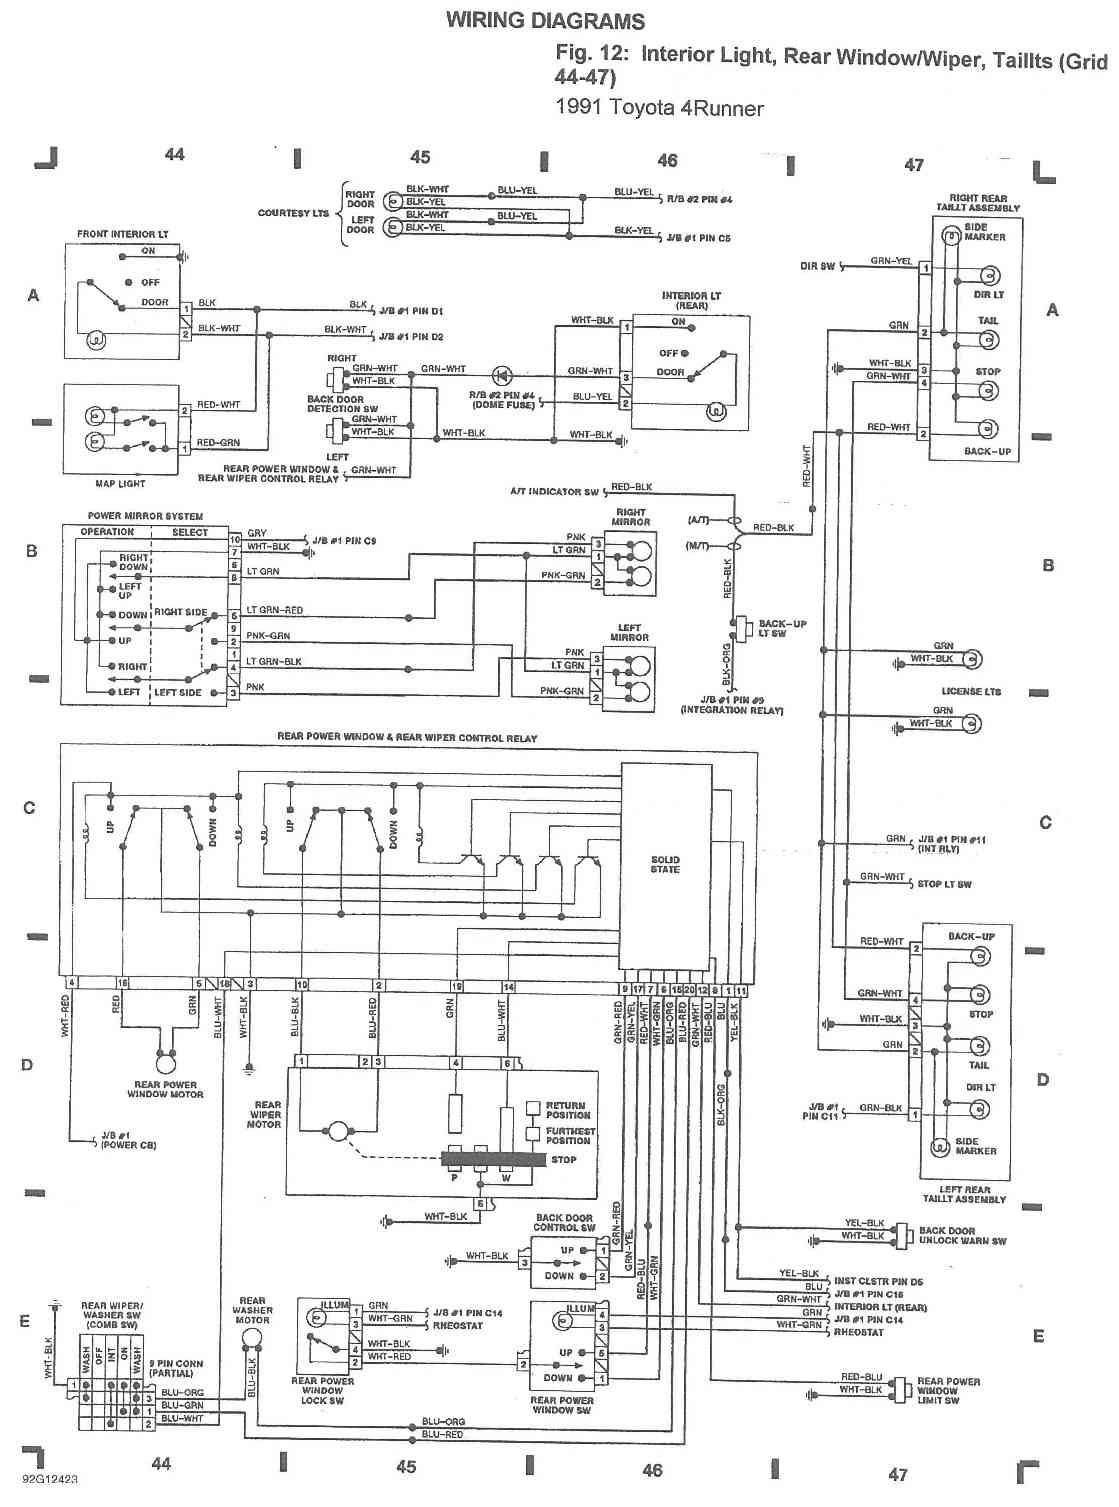 hight resolution of 92 4runner fuse diagram wiring diagrams value 4runner window fuses diagram